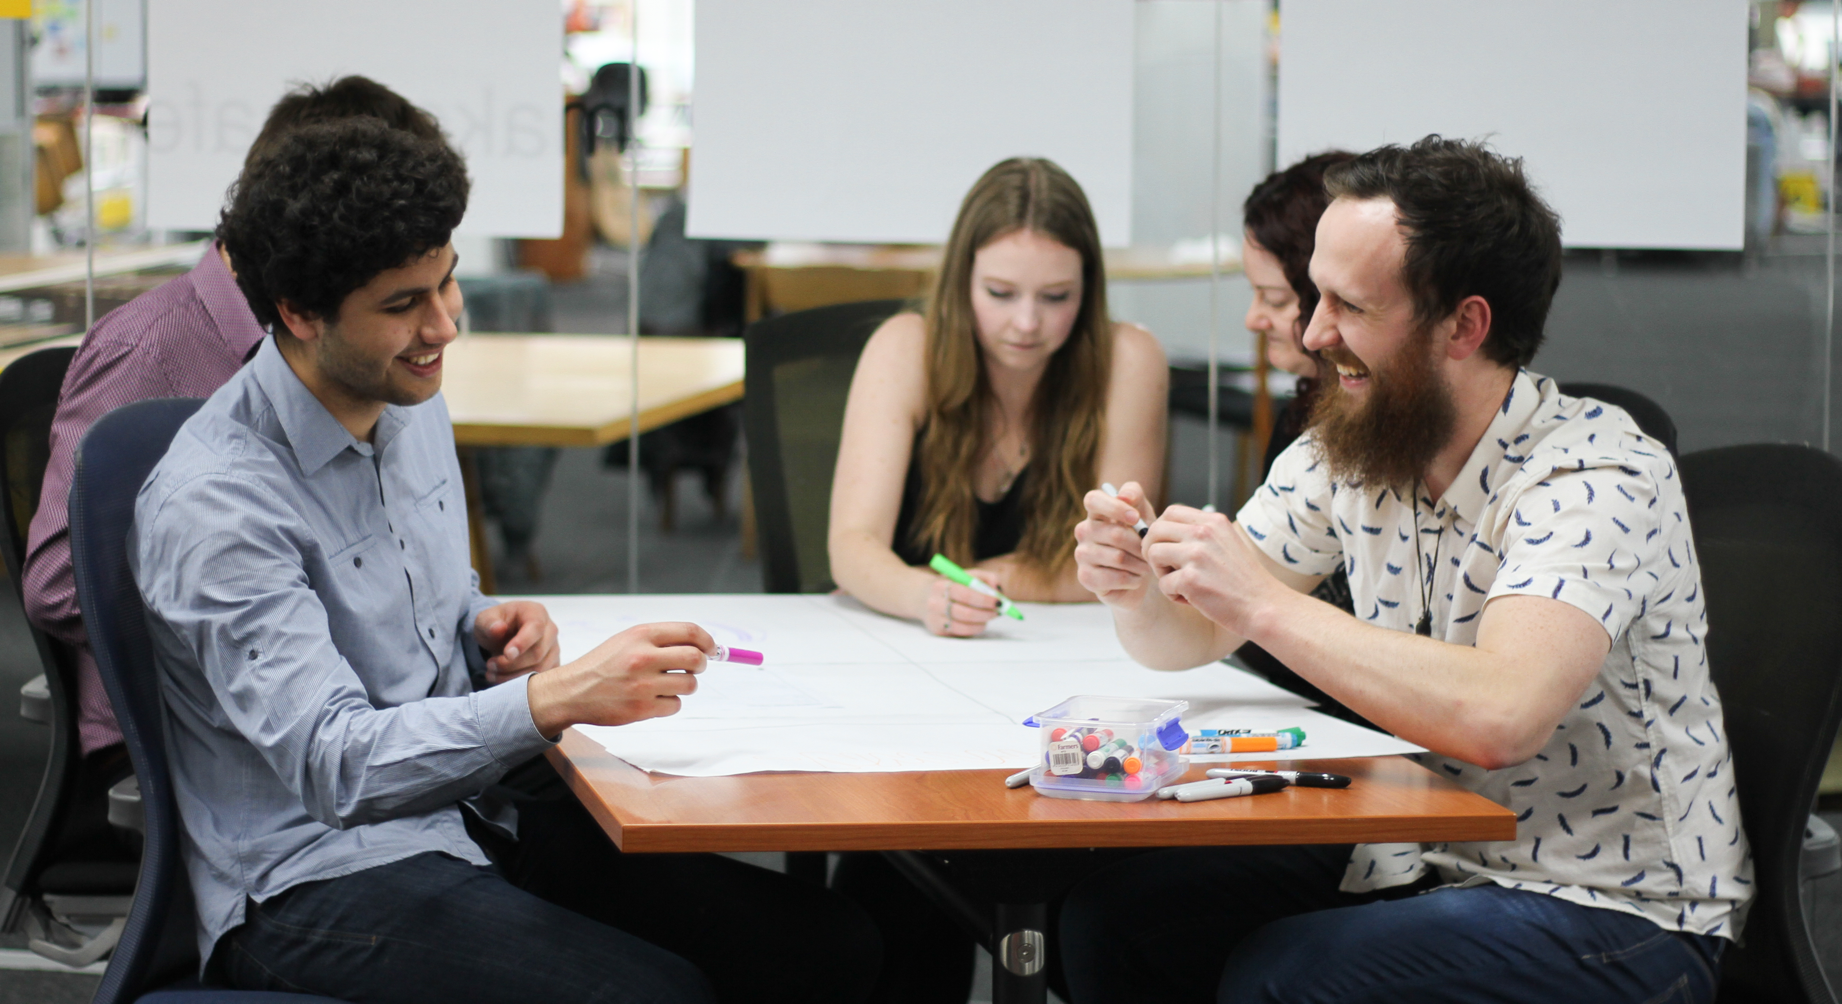 Team collaborating on an activity at a free project discovery workshop.